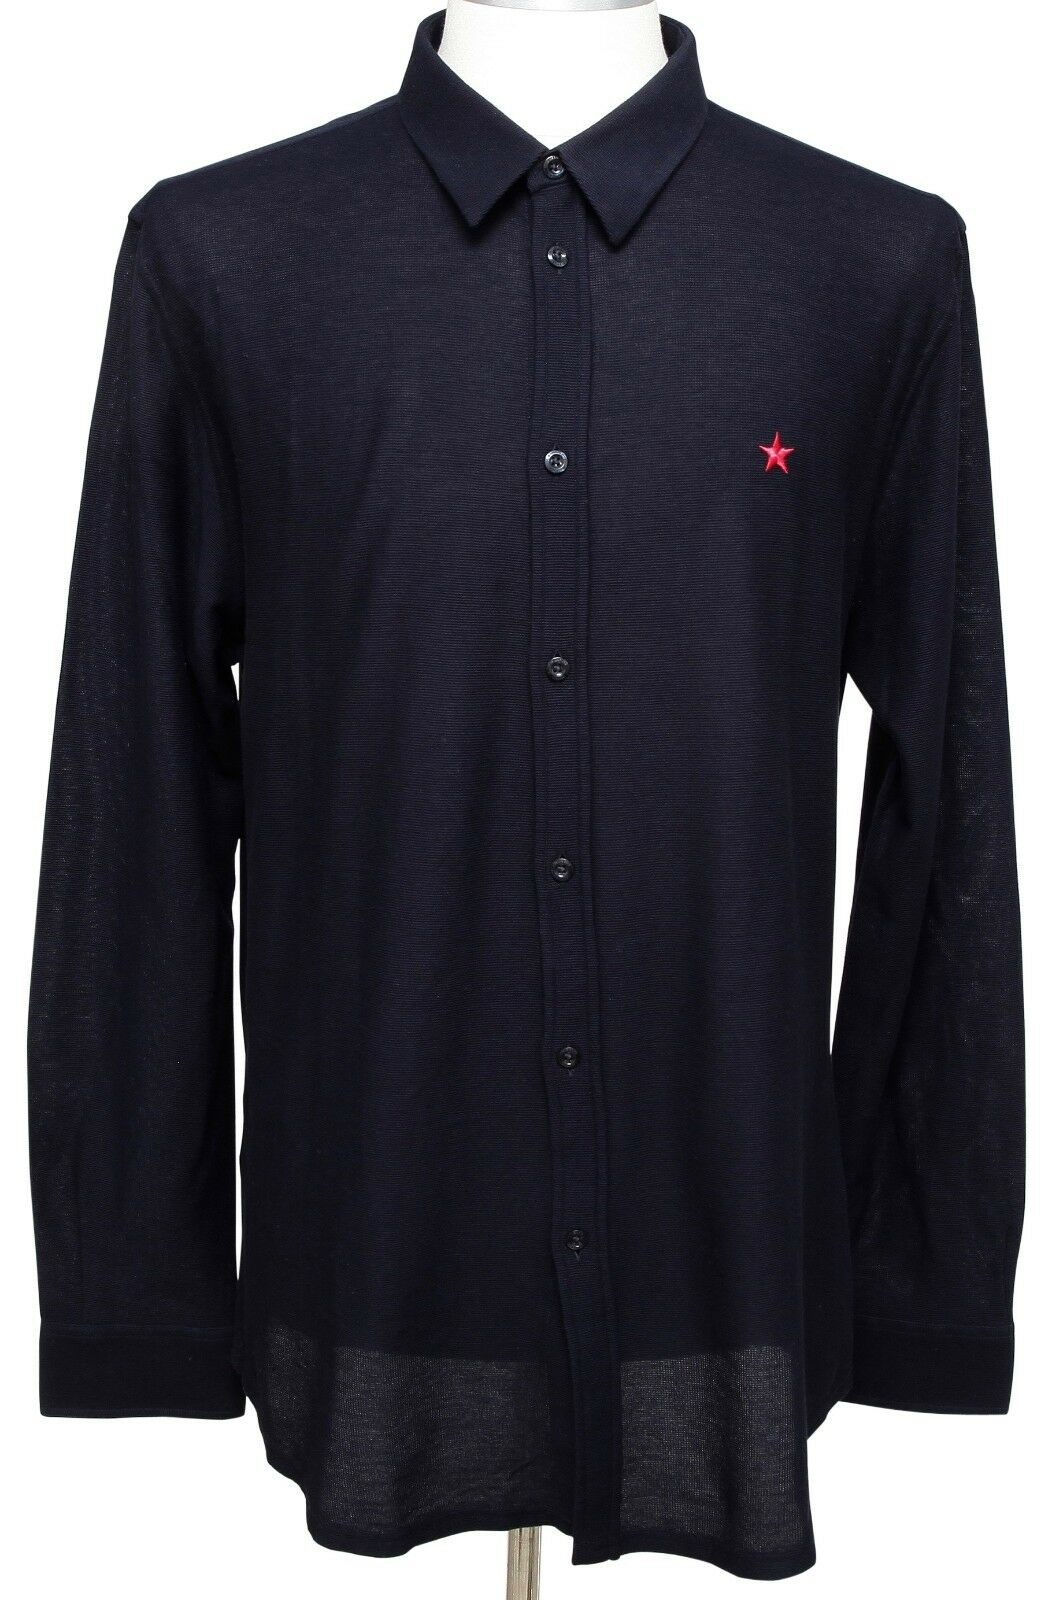 GIVENCHY Men's Shirt Navy bluee Long Sleeve Button Down Cotton Red Star Sz 44 NEW